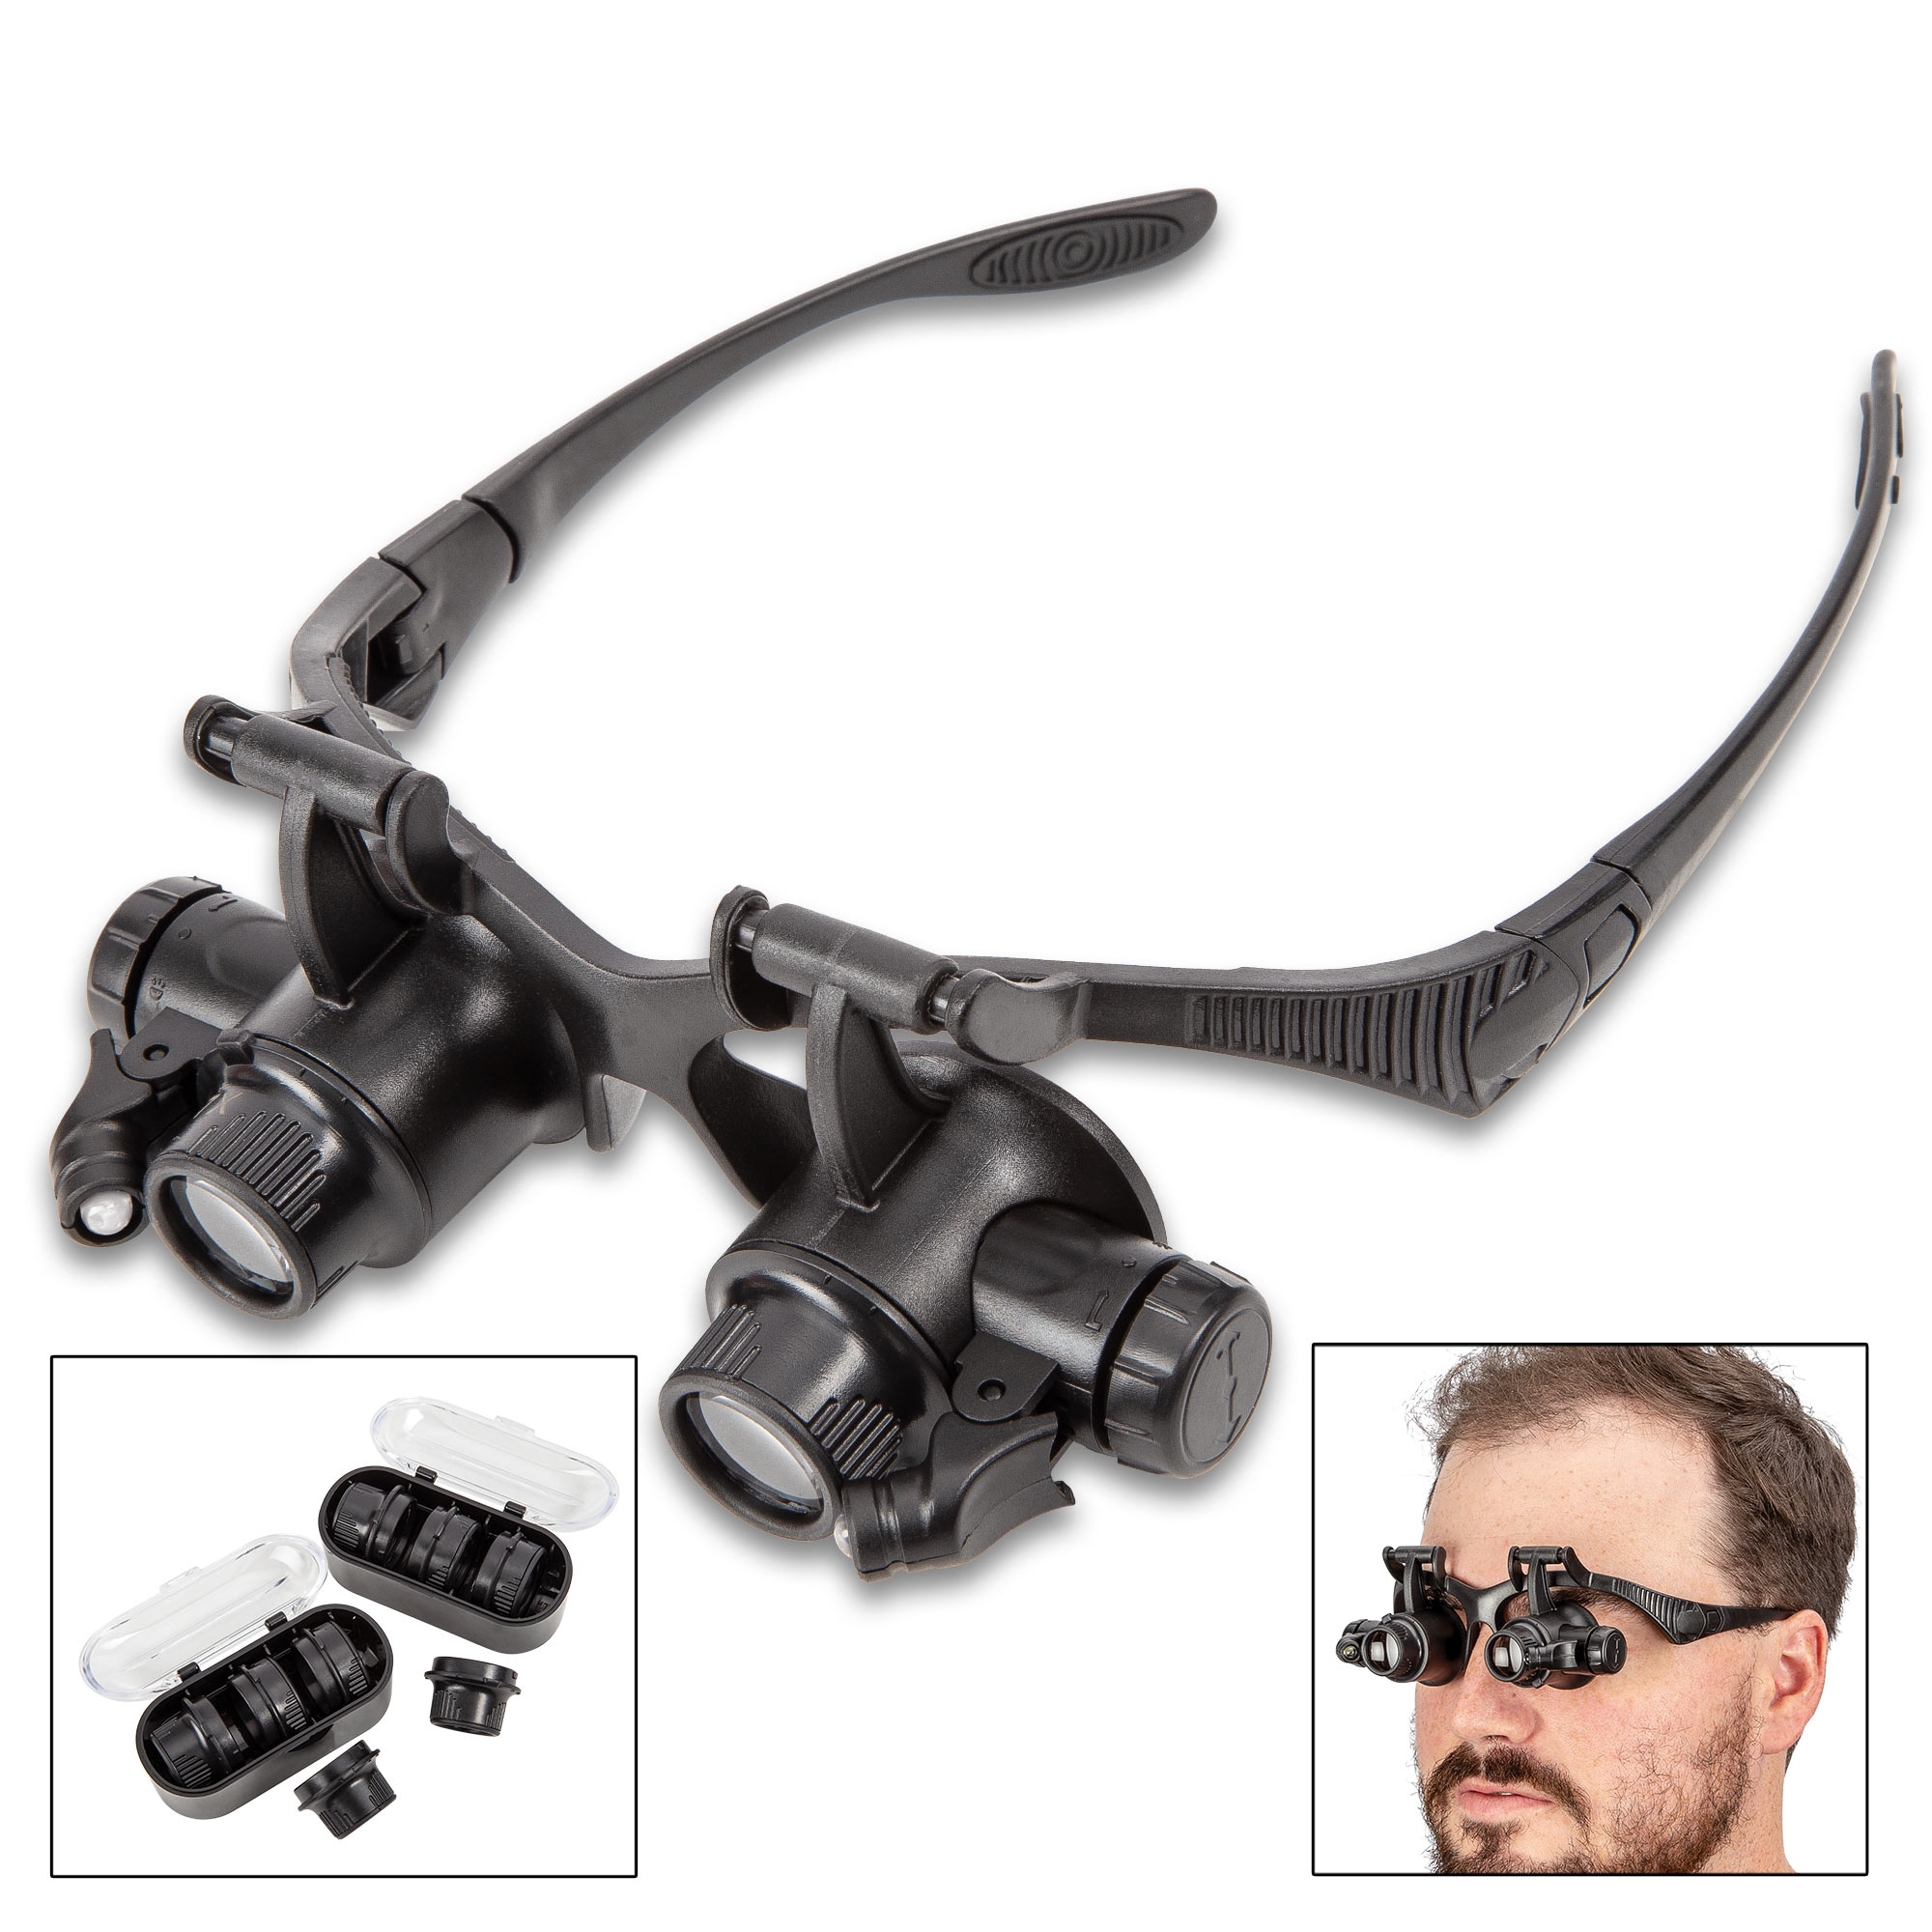 1c7d3f6cbea Illuminated Hands-Free Dual Loupe With Case - On Glasses Frame